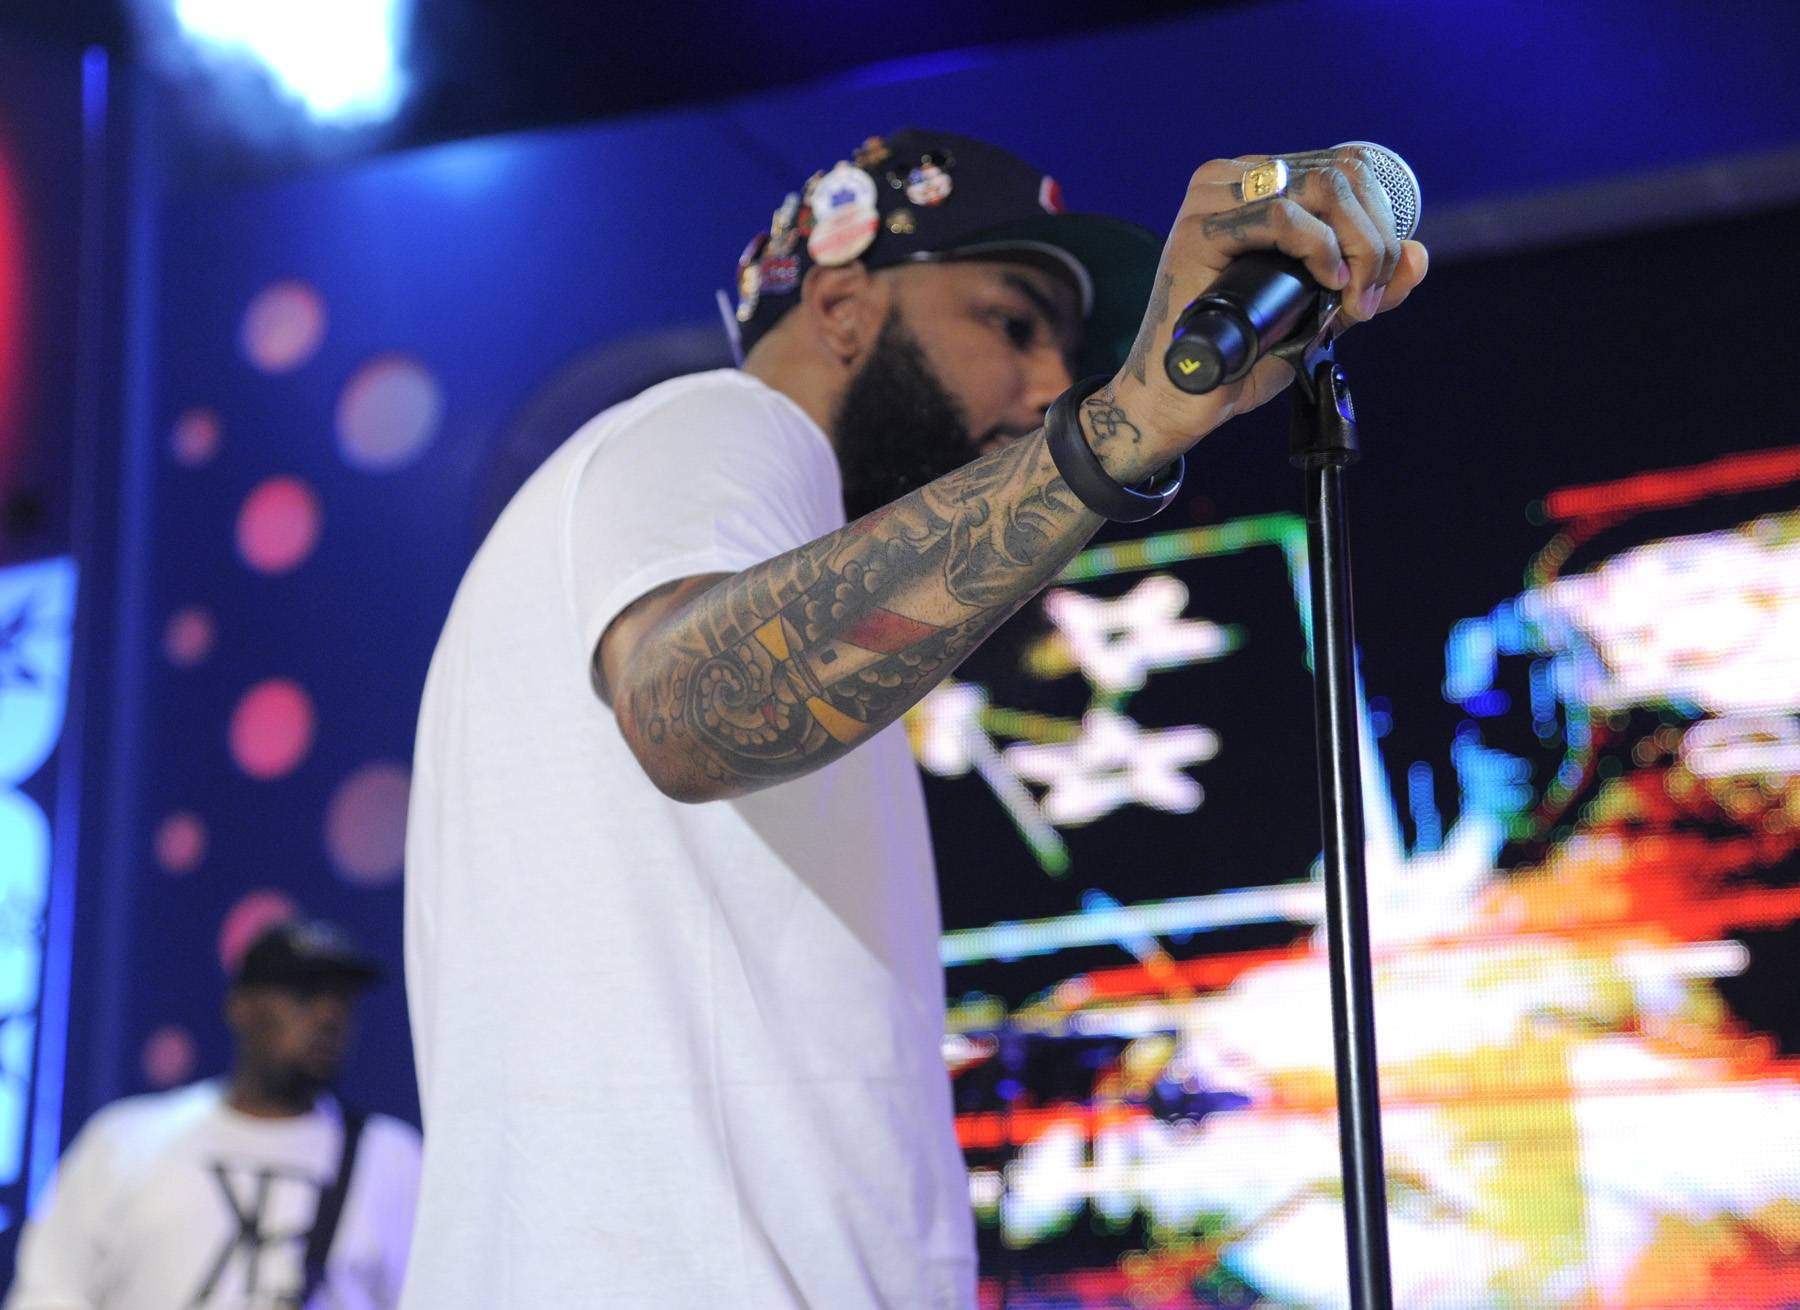 Take a Moment - Stalley of MMG rehearsing before he goes on at 106 & Park, April 17, 2012. (Photo: John Ricard/BET)